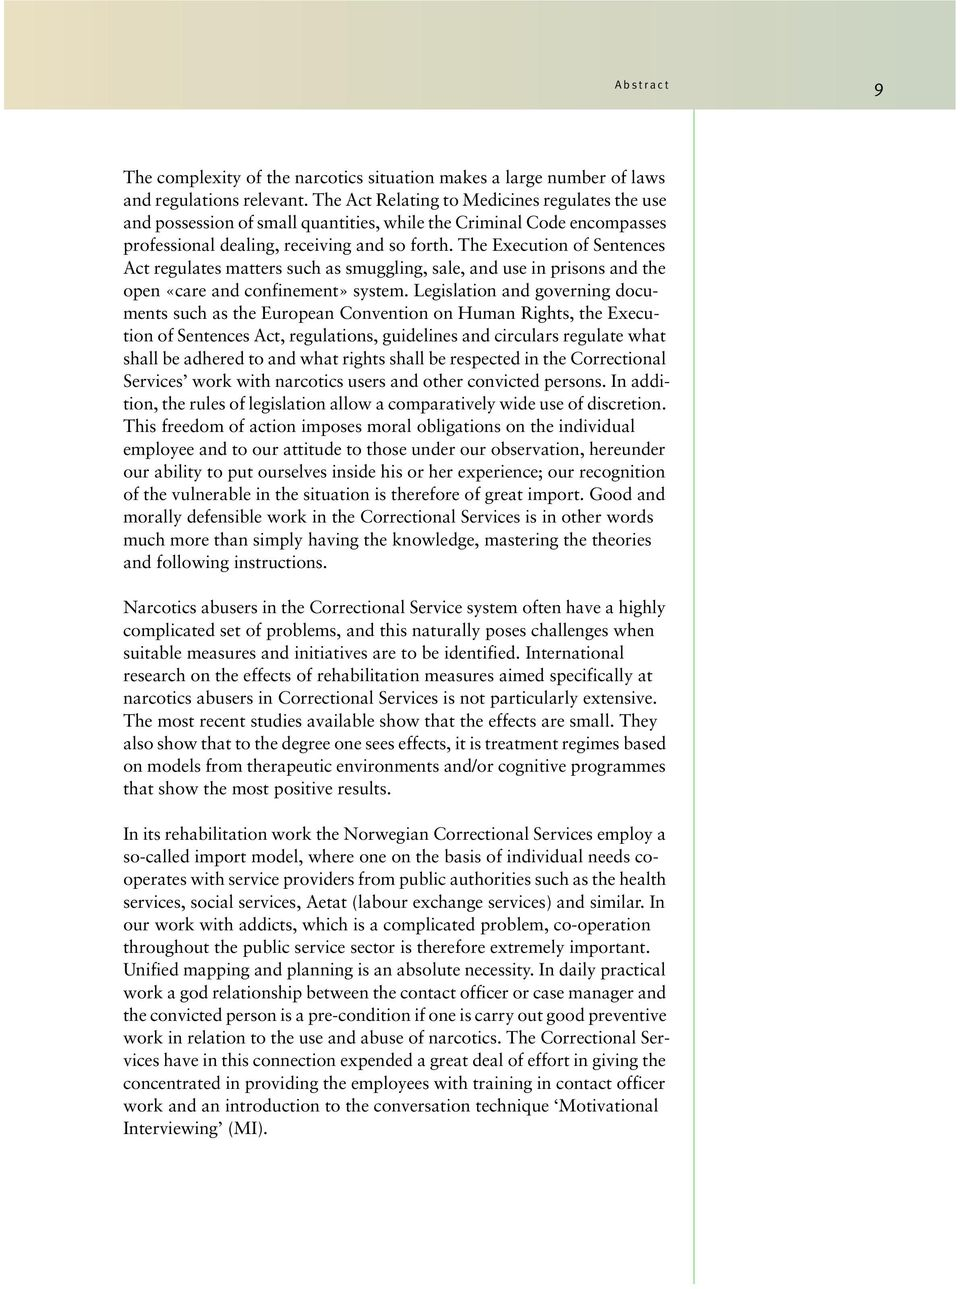 The Execution of Sentences Act regulates matters such as smuggling, sale, and use in prisons and the open «care and confinement» system.